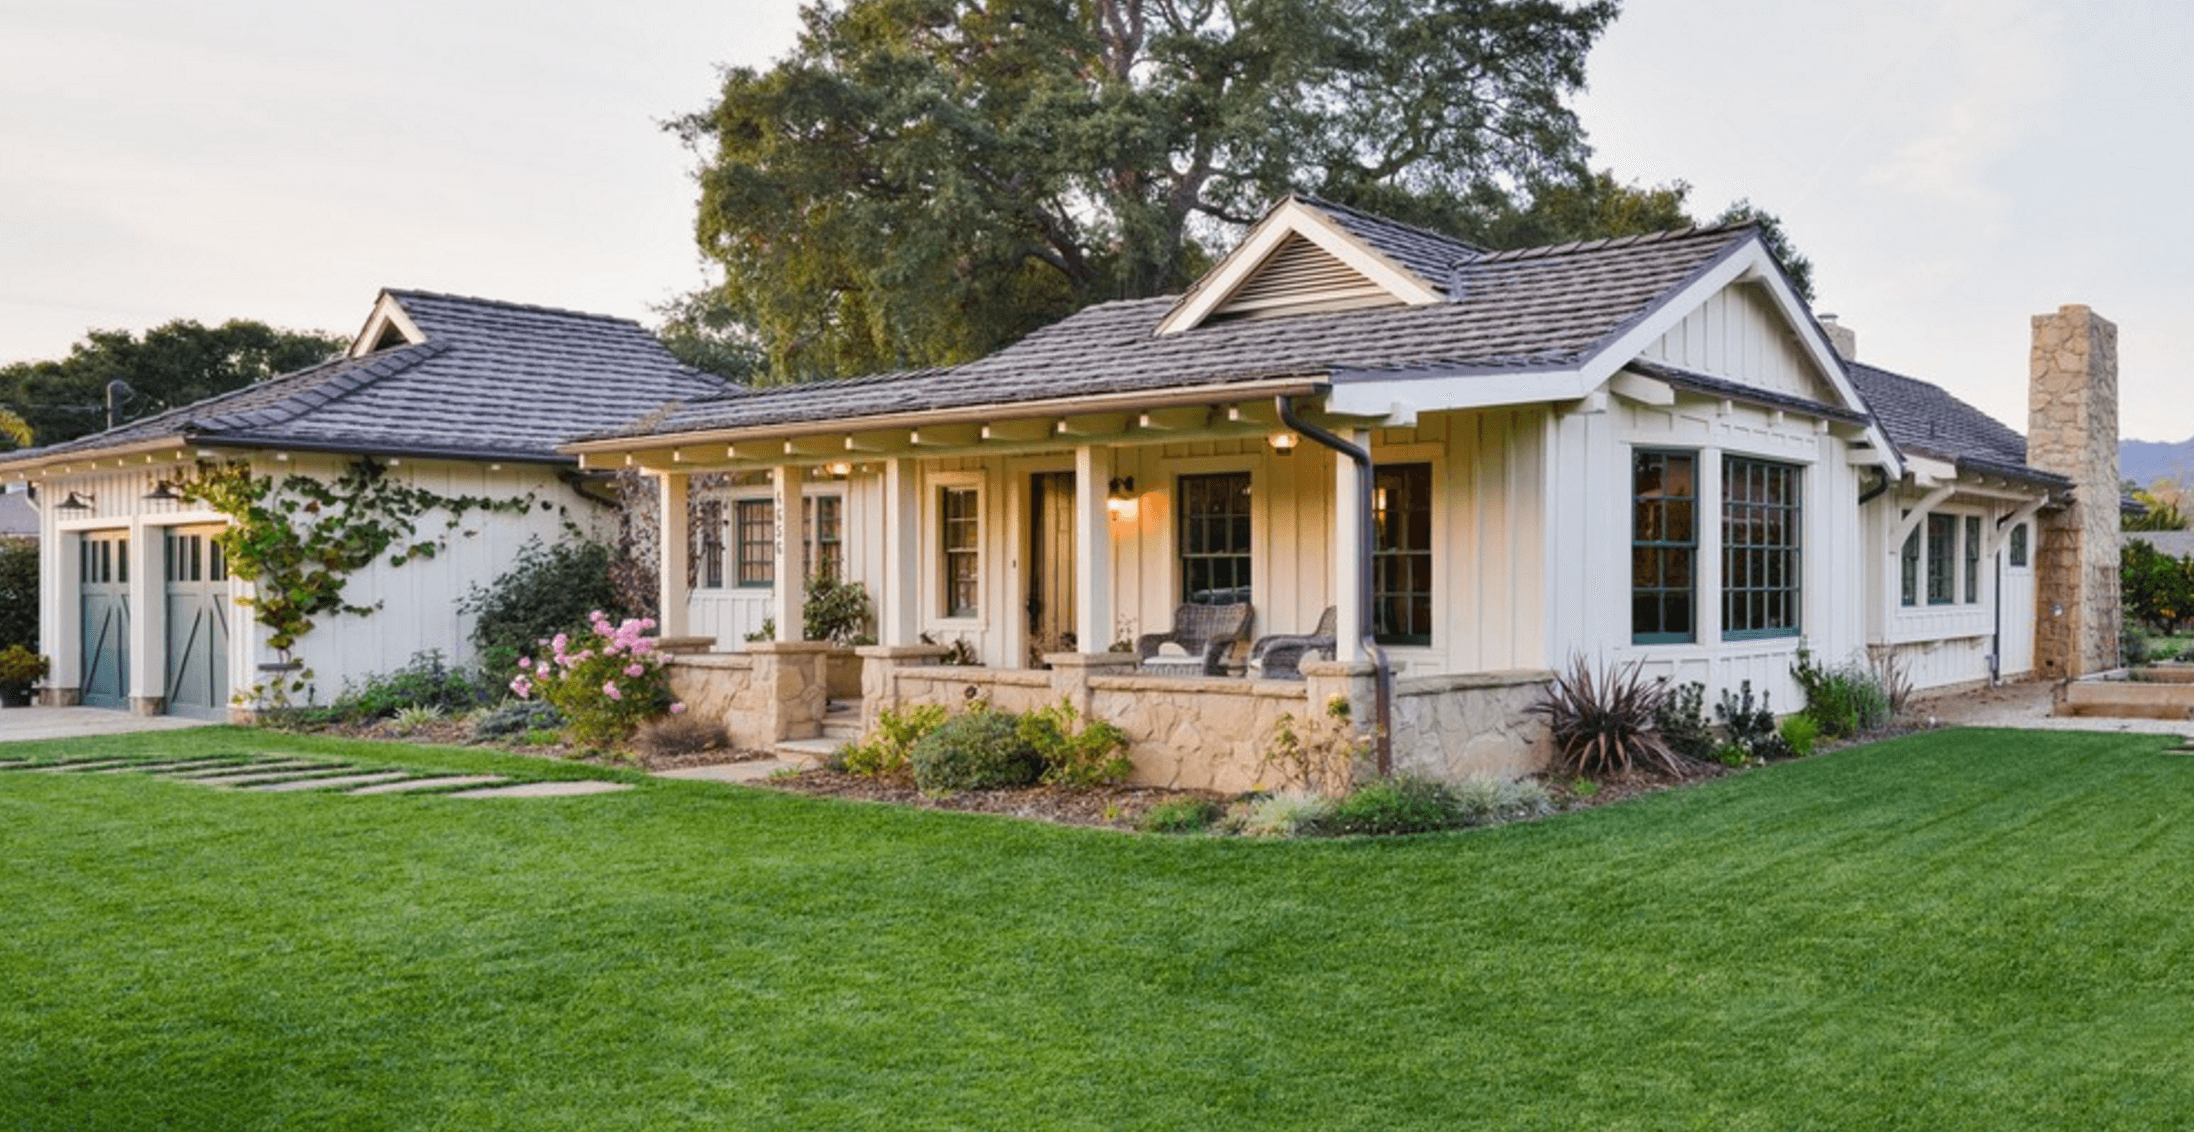 10 White Exterior Ideas for a Bright, Modern Home Ranch